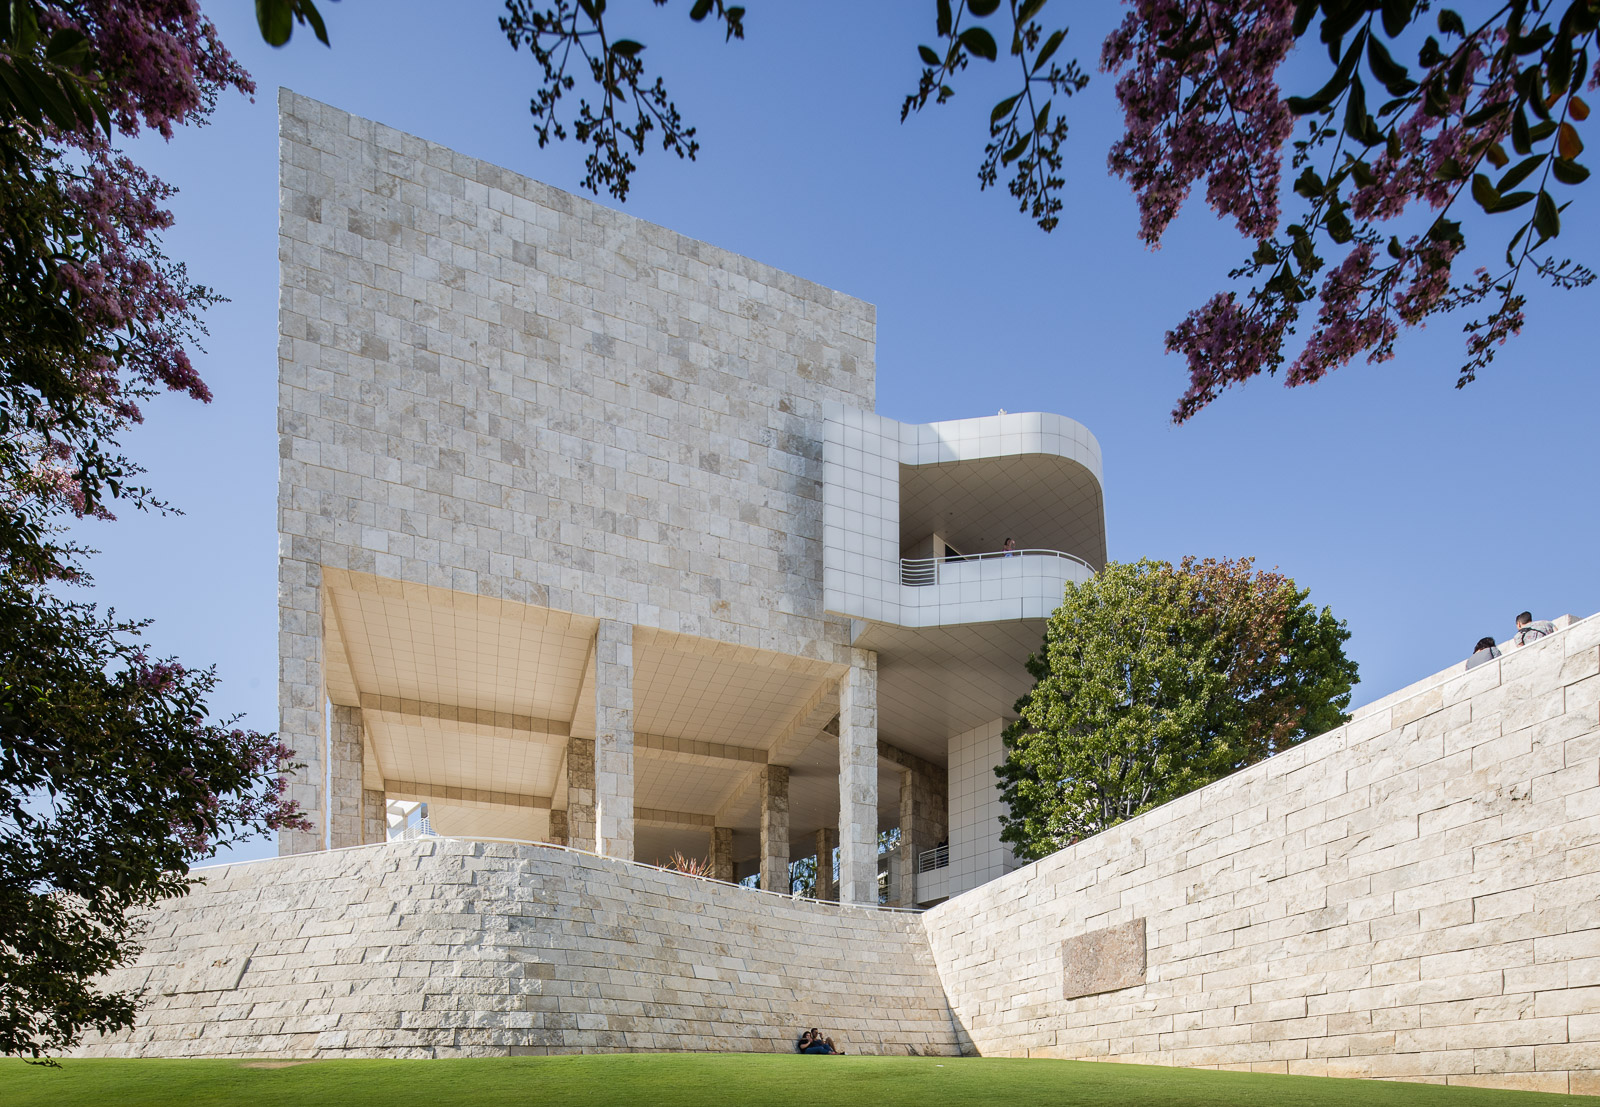 Beautiful building of the Getty Museum